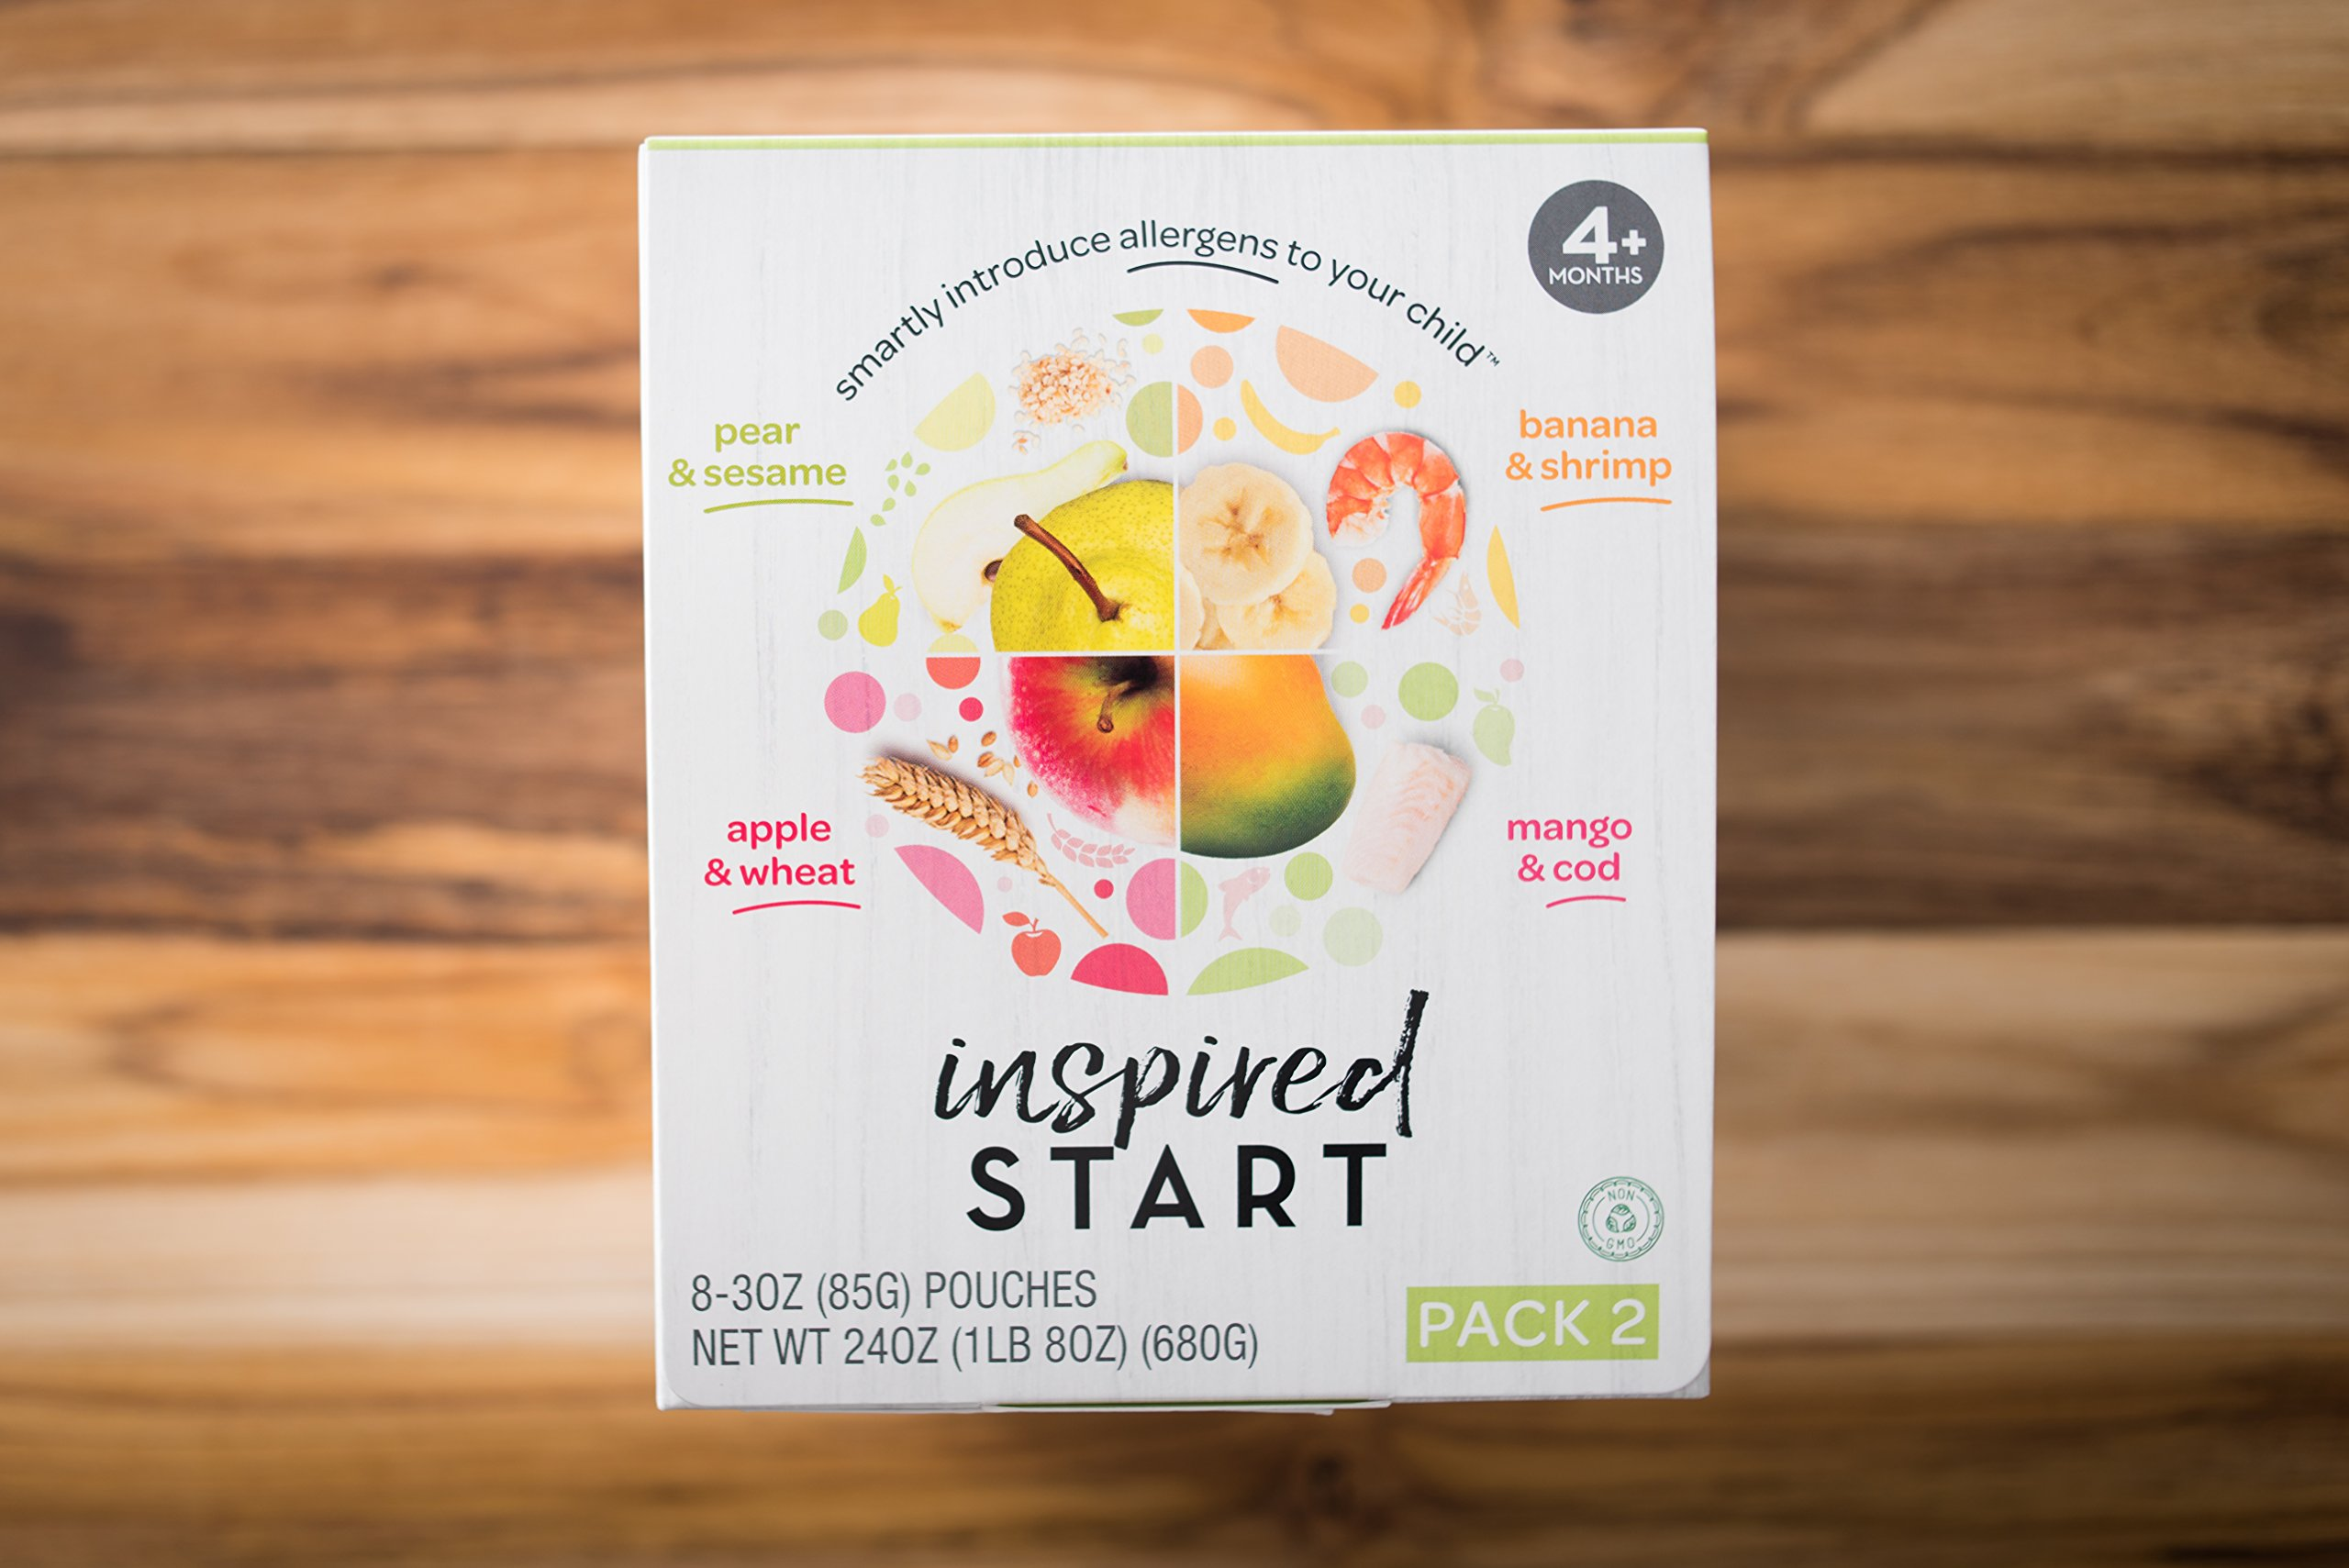 Early Allergen Introduction Baby Food: Inspired Start Pack 2, 3 oz. (Pack of 8 baby food pouches) - Non-GMO, include wheat, sesame, shrimp and cod in baby's diet by Inspired Start (Image #3)